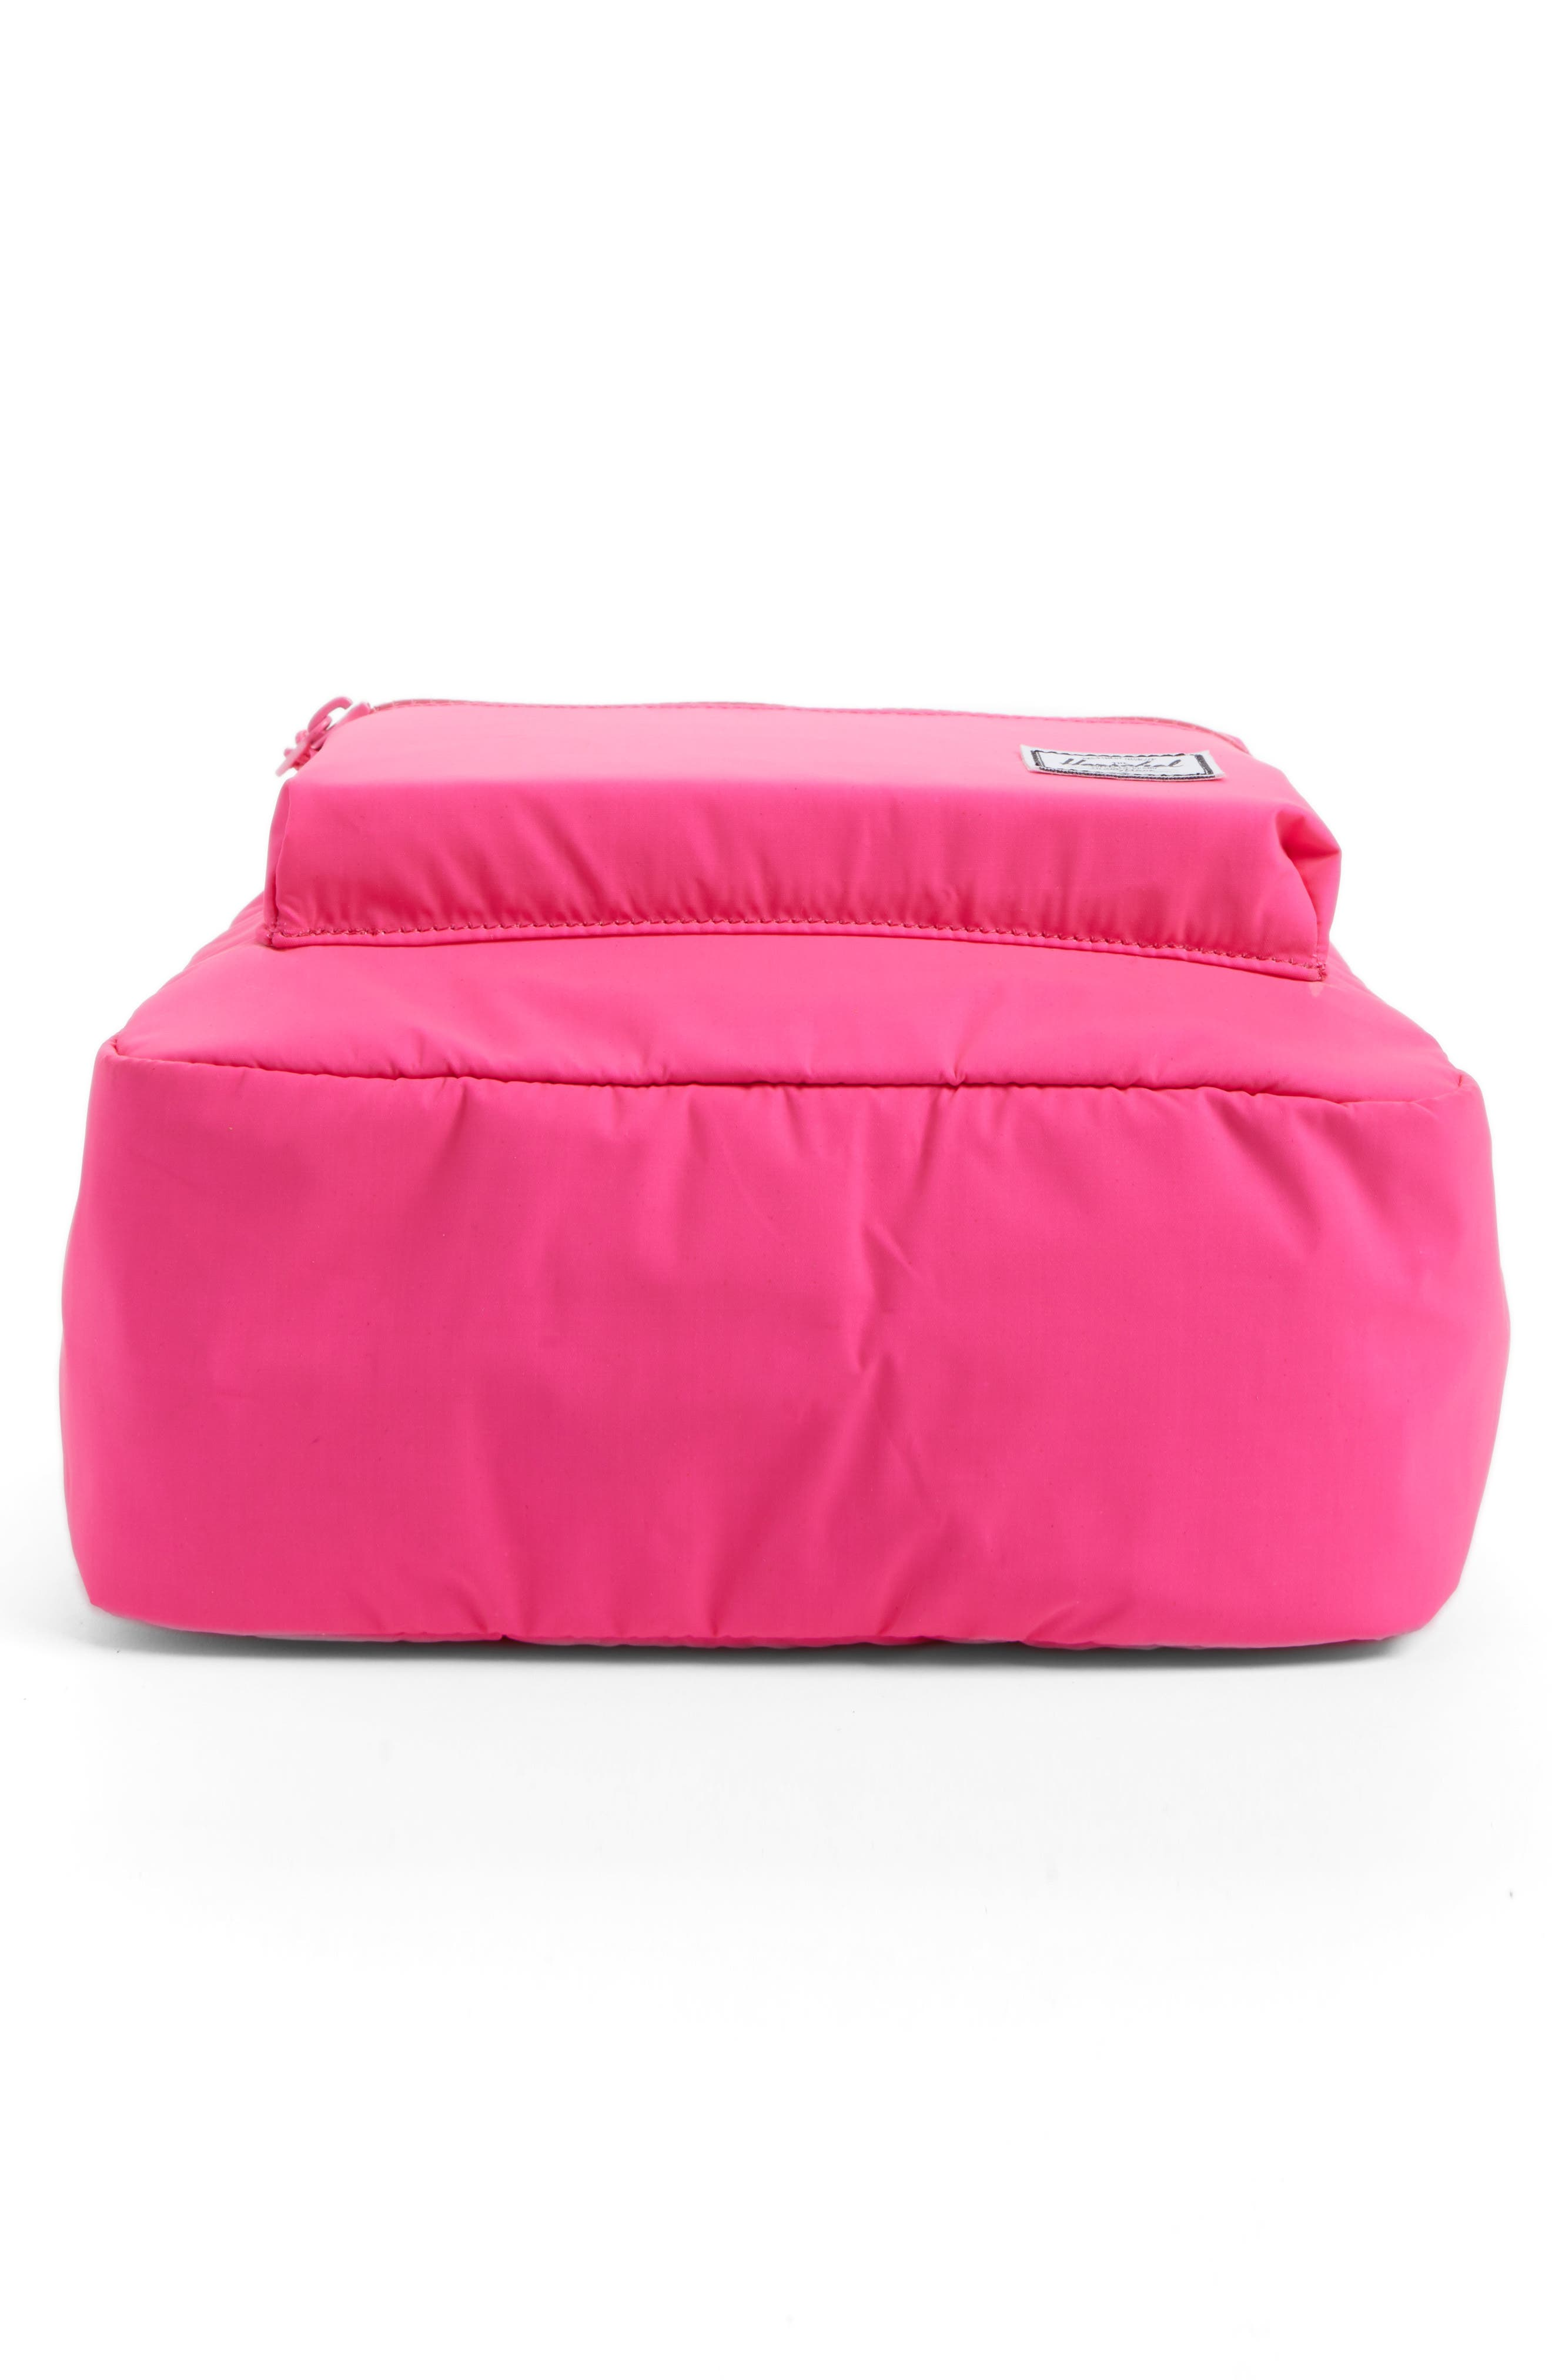 Heritage Backpack,                             Alternate thumbnail 6, color,                             Neon Pink Rubber